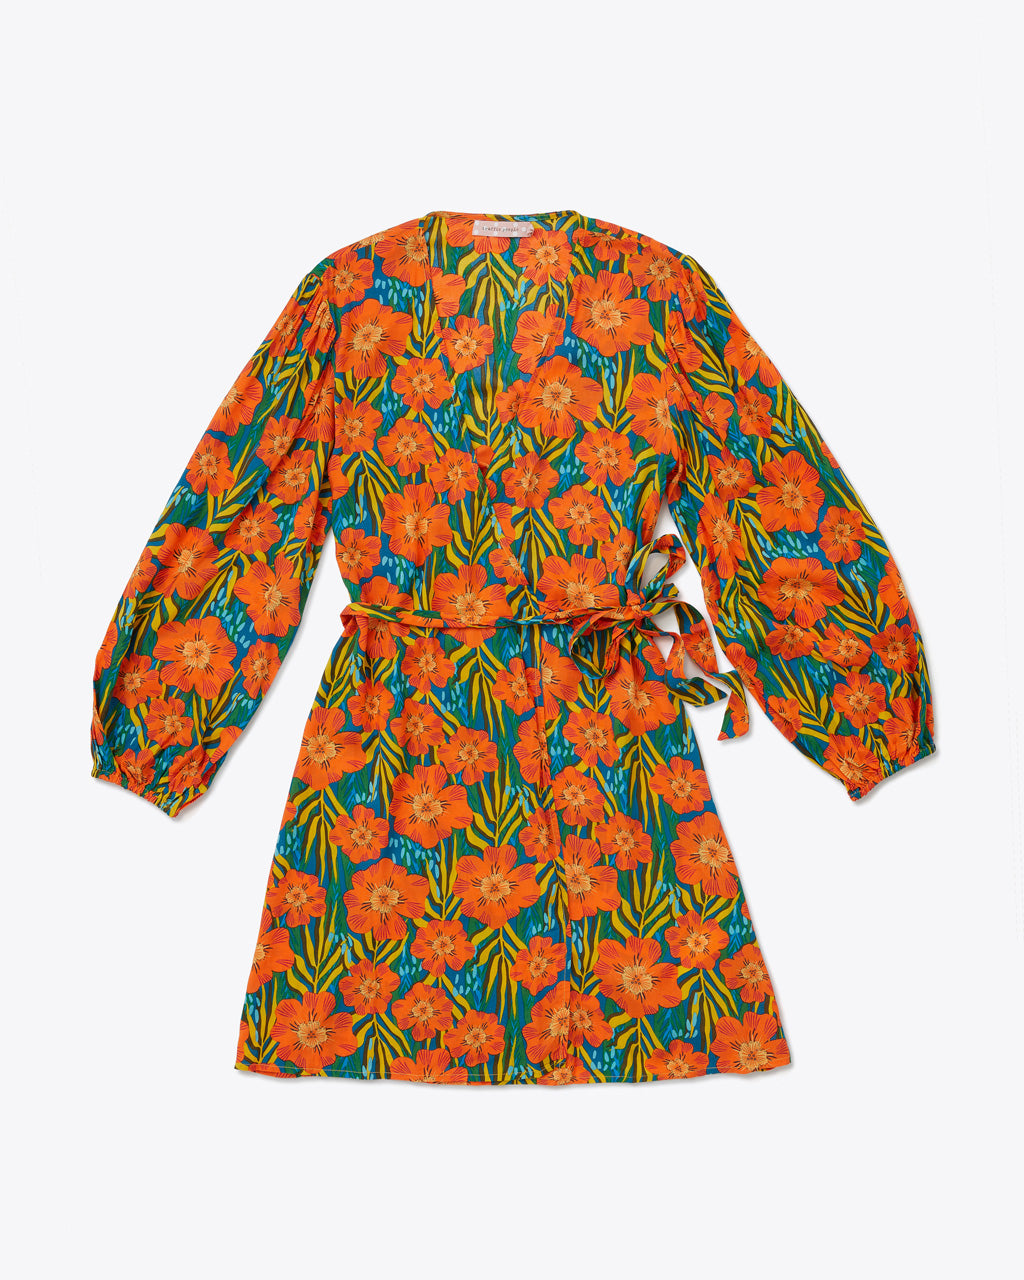 low v-neck mini dress with a bright orange floral pattern